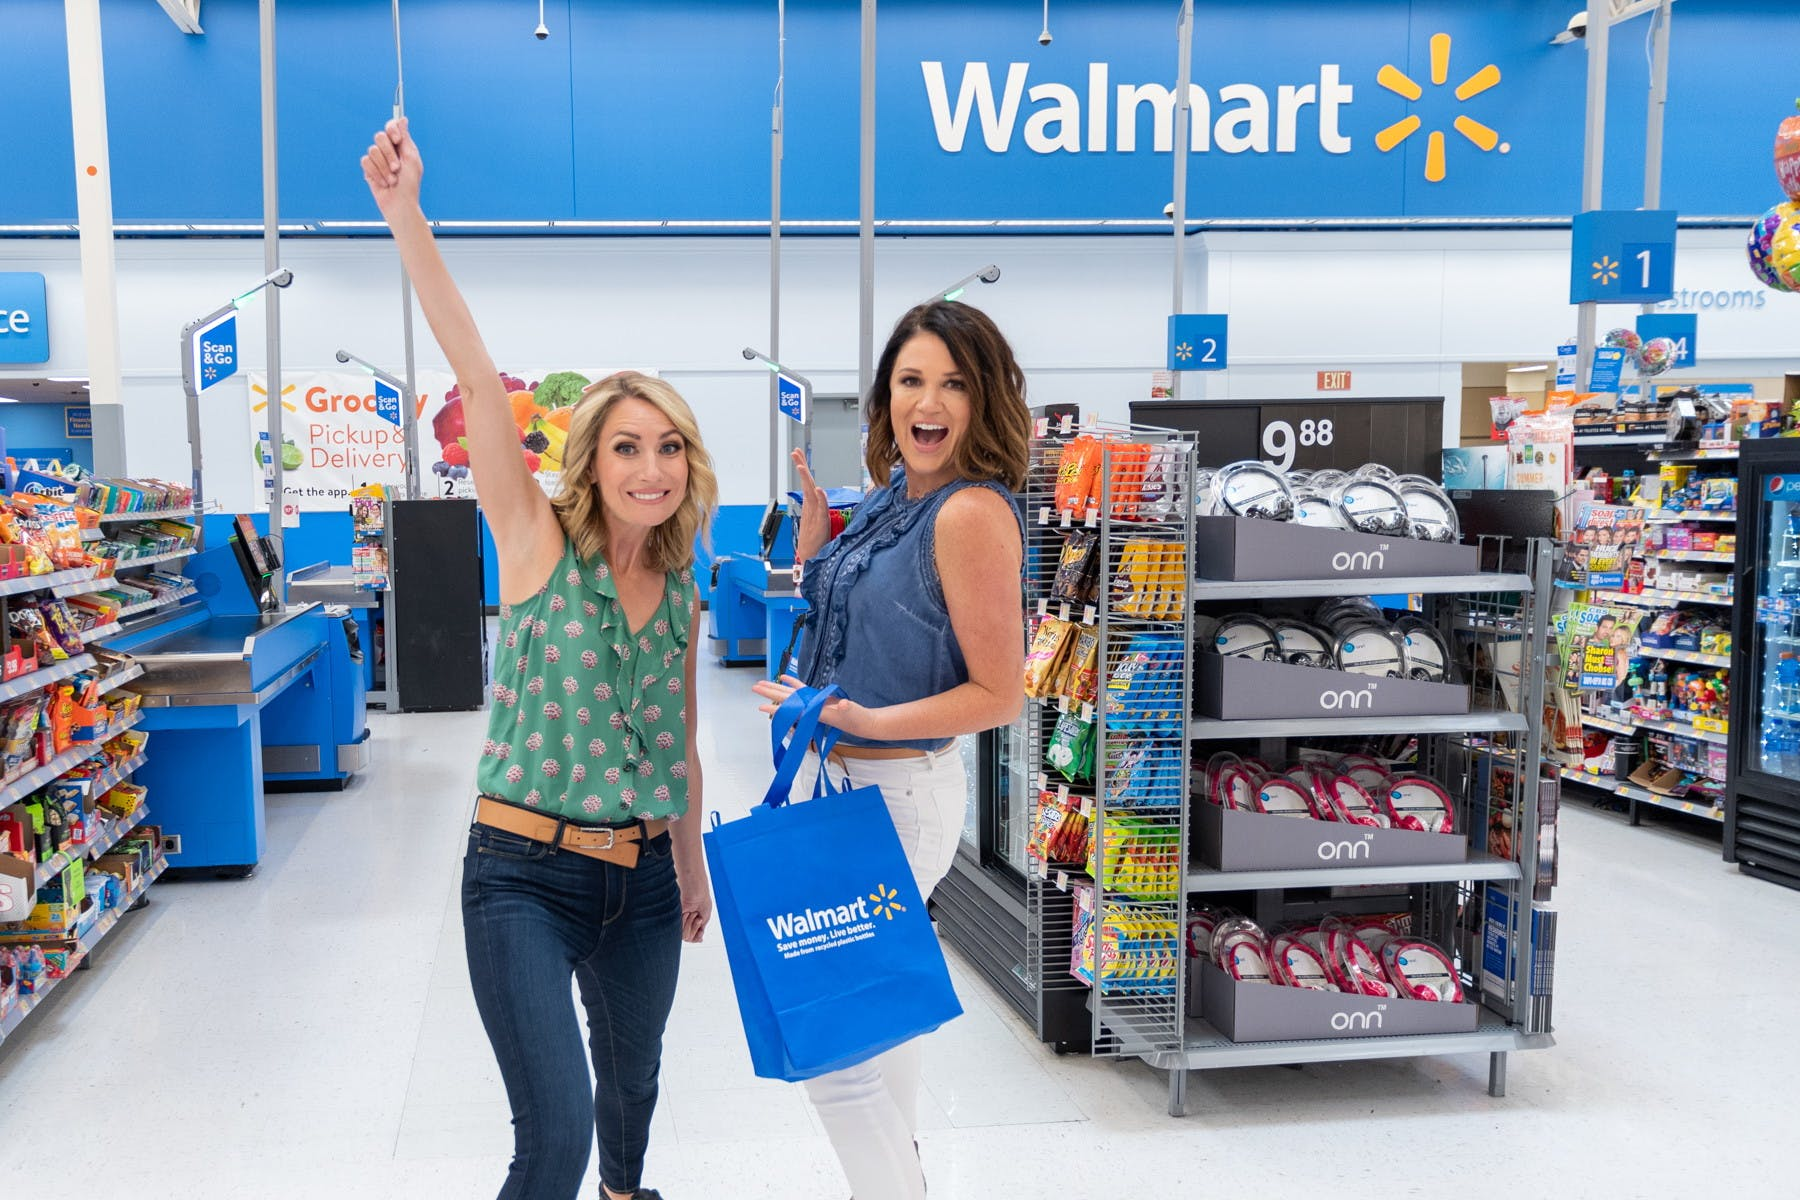 Walmart Couponing 101 How To Shop Smarter Get Free Groceries The Krazy Coupon Lady